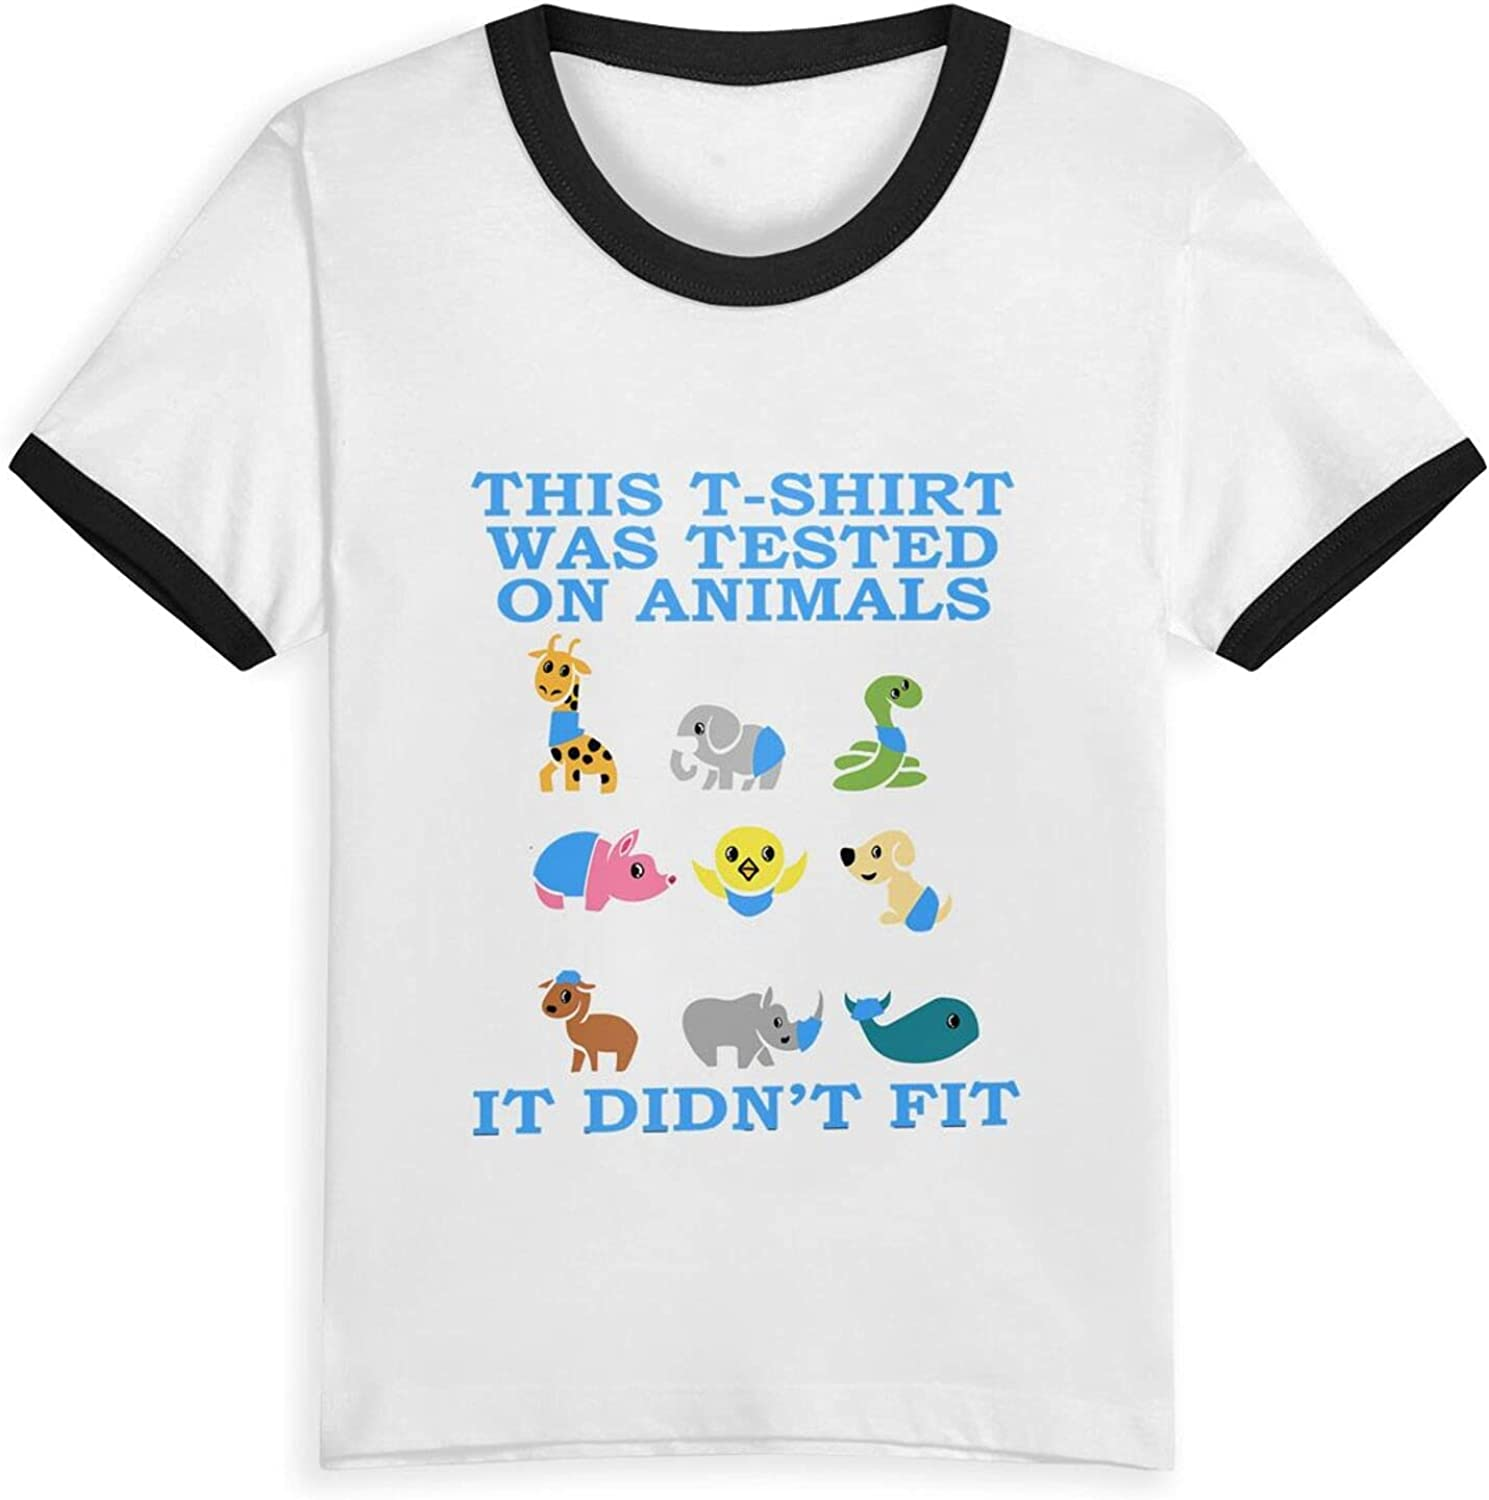 This Tshirt was Tested On Animals It Didnt Fit T-Shirts Novelty for Kids Tees with Cool Designs